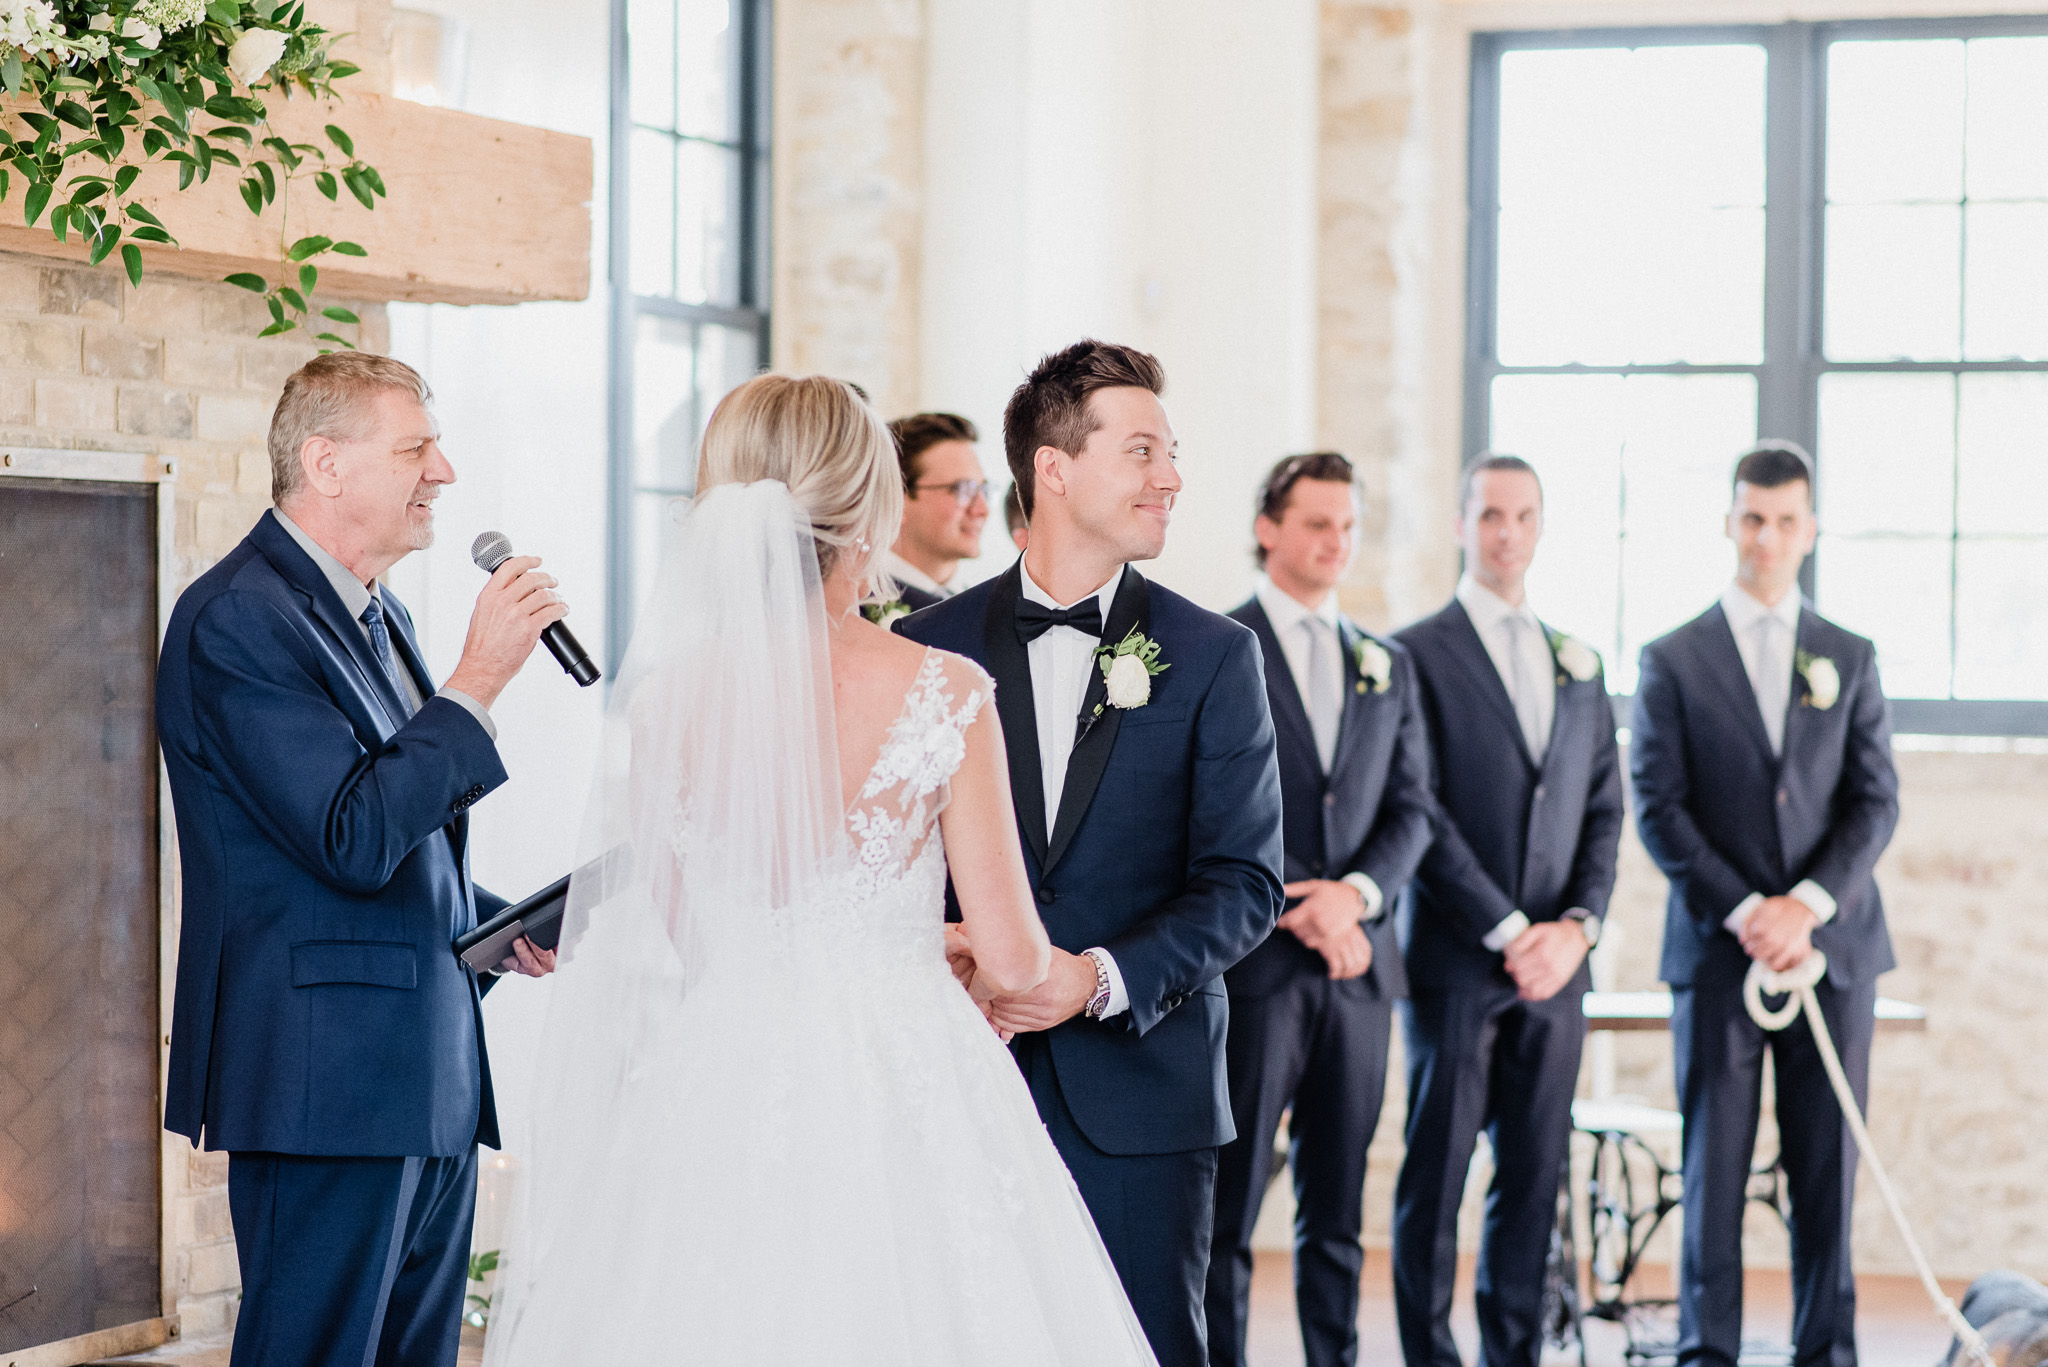 Elora Mill wedding ceremony in The Foundry | Jenn Kavanagh Photography